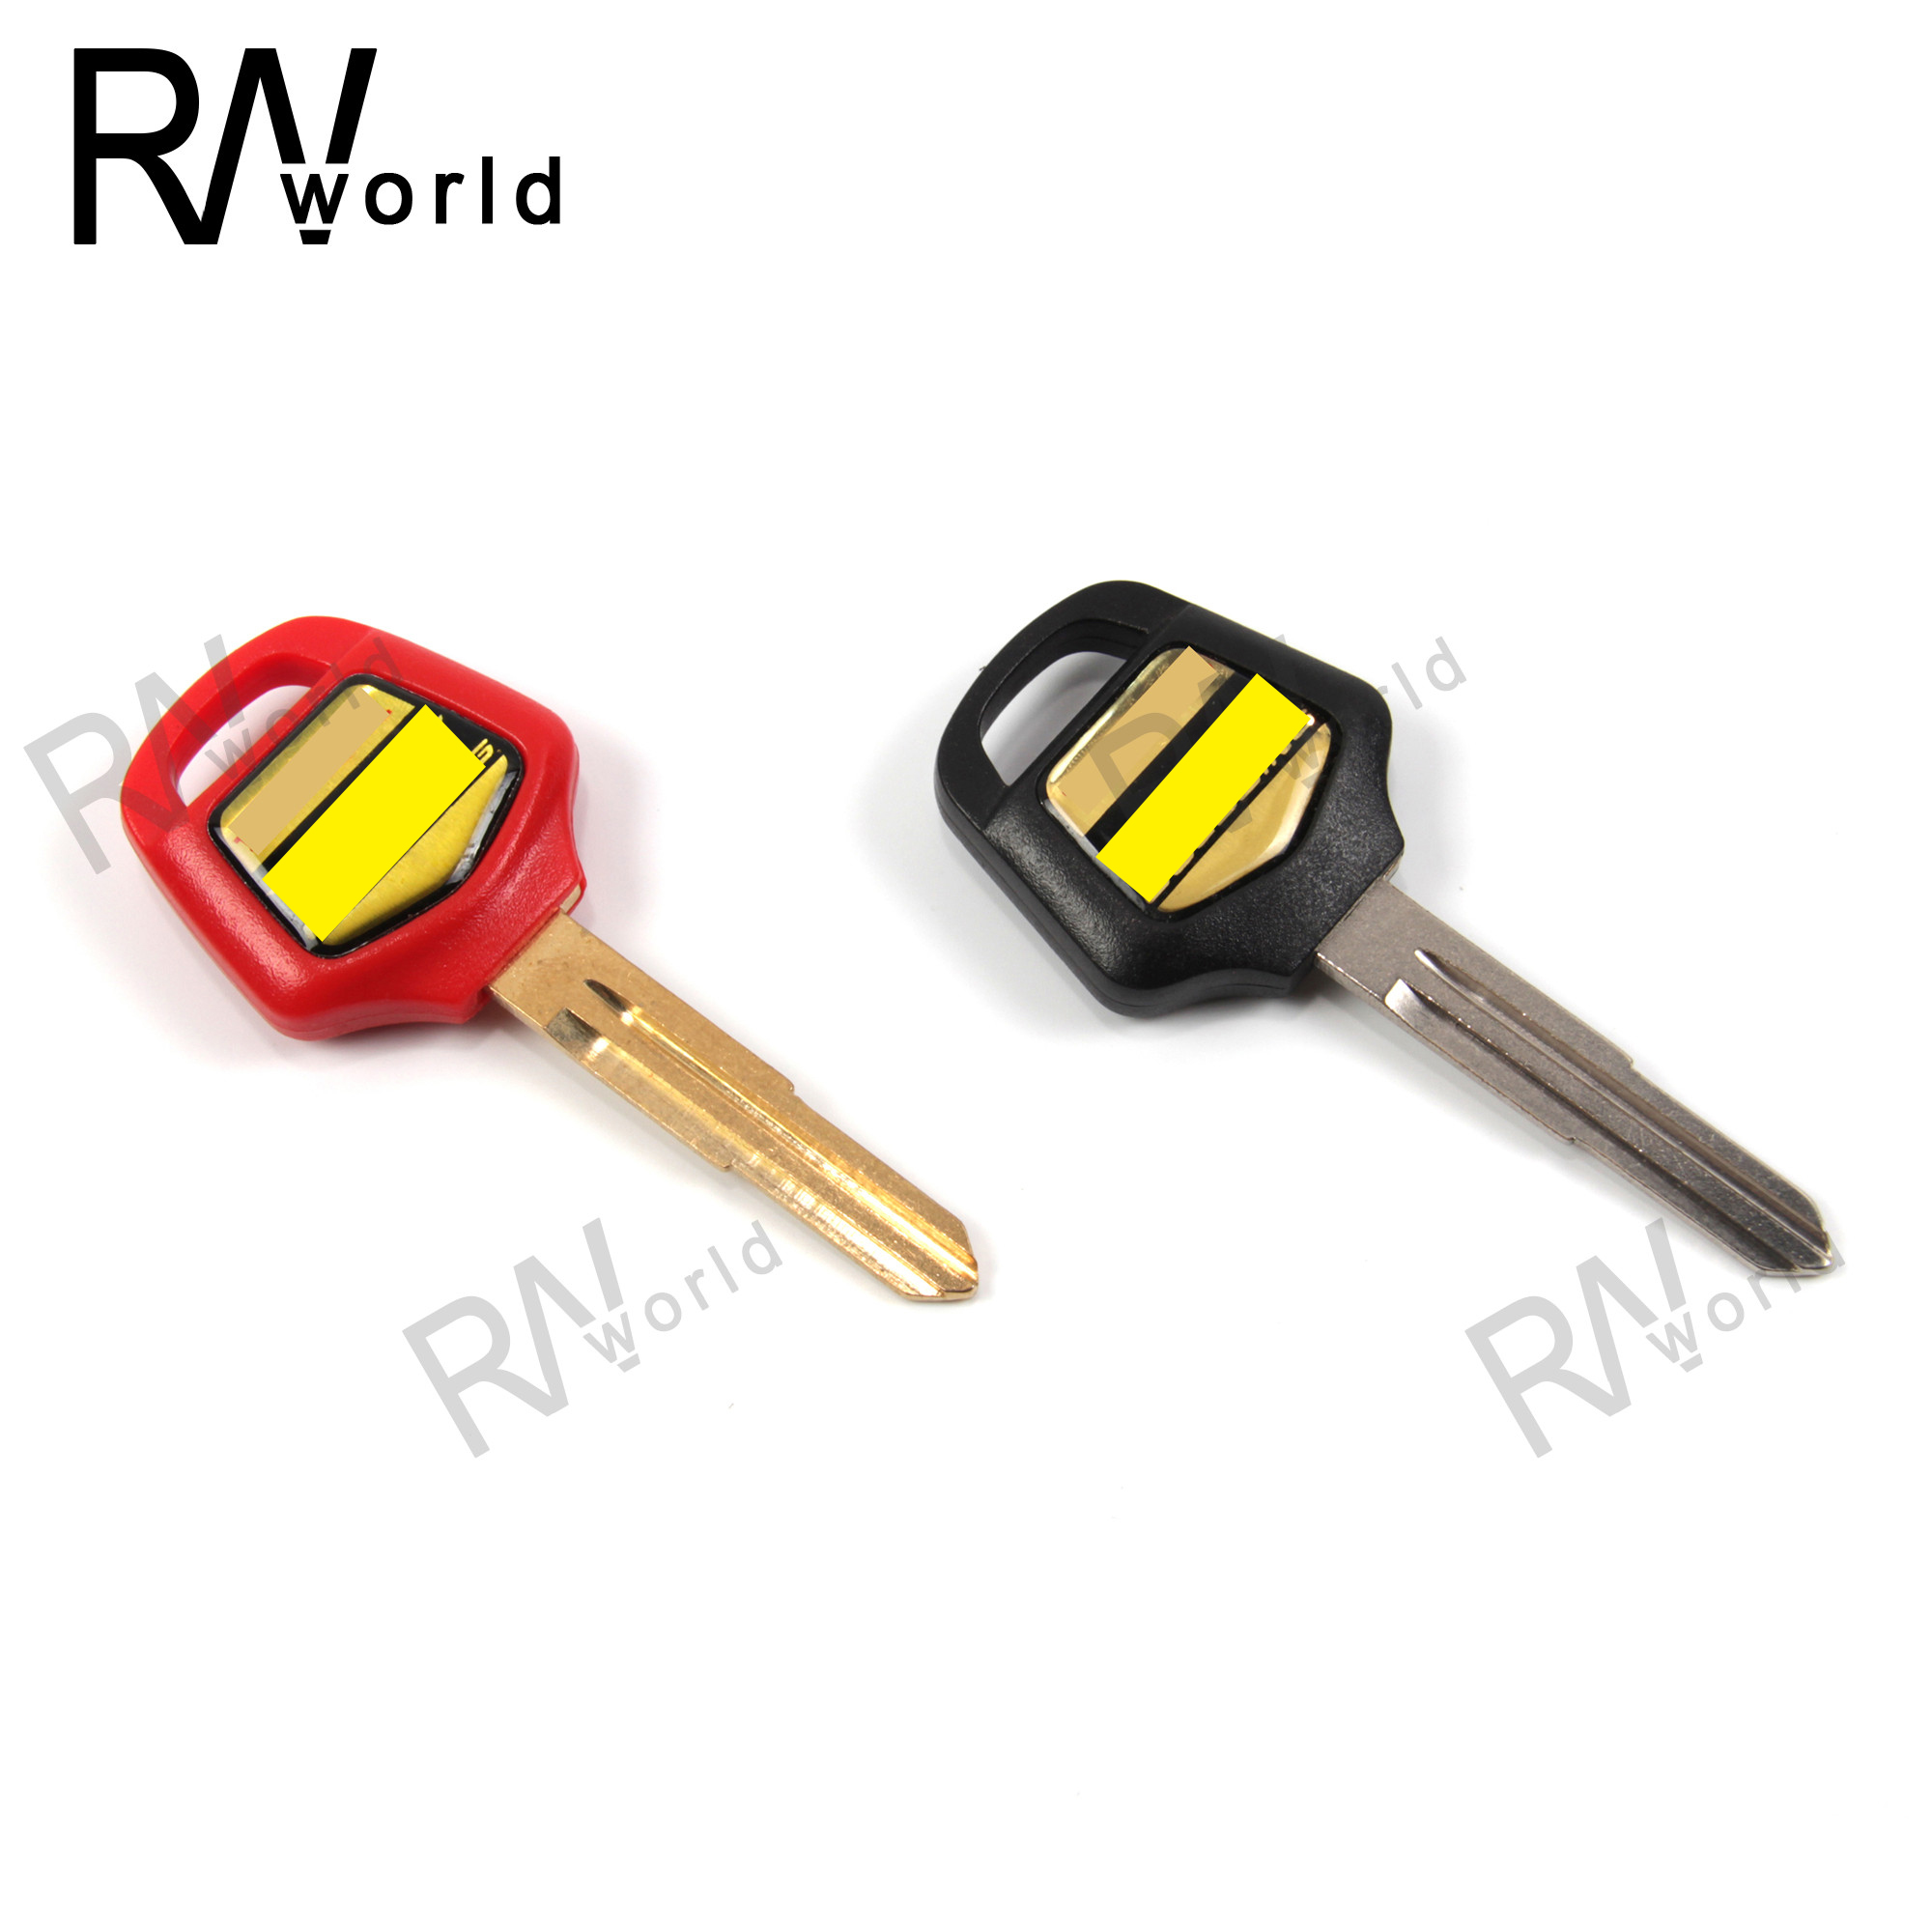 Motorcycle Uncut Blade Blank Key Embryo For HONDA Goldwing GL1000 1100 1200 1500 1800 Motorcycles Replacement Accessories